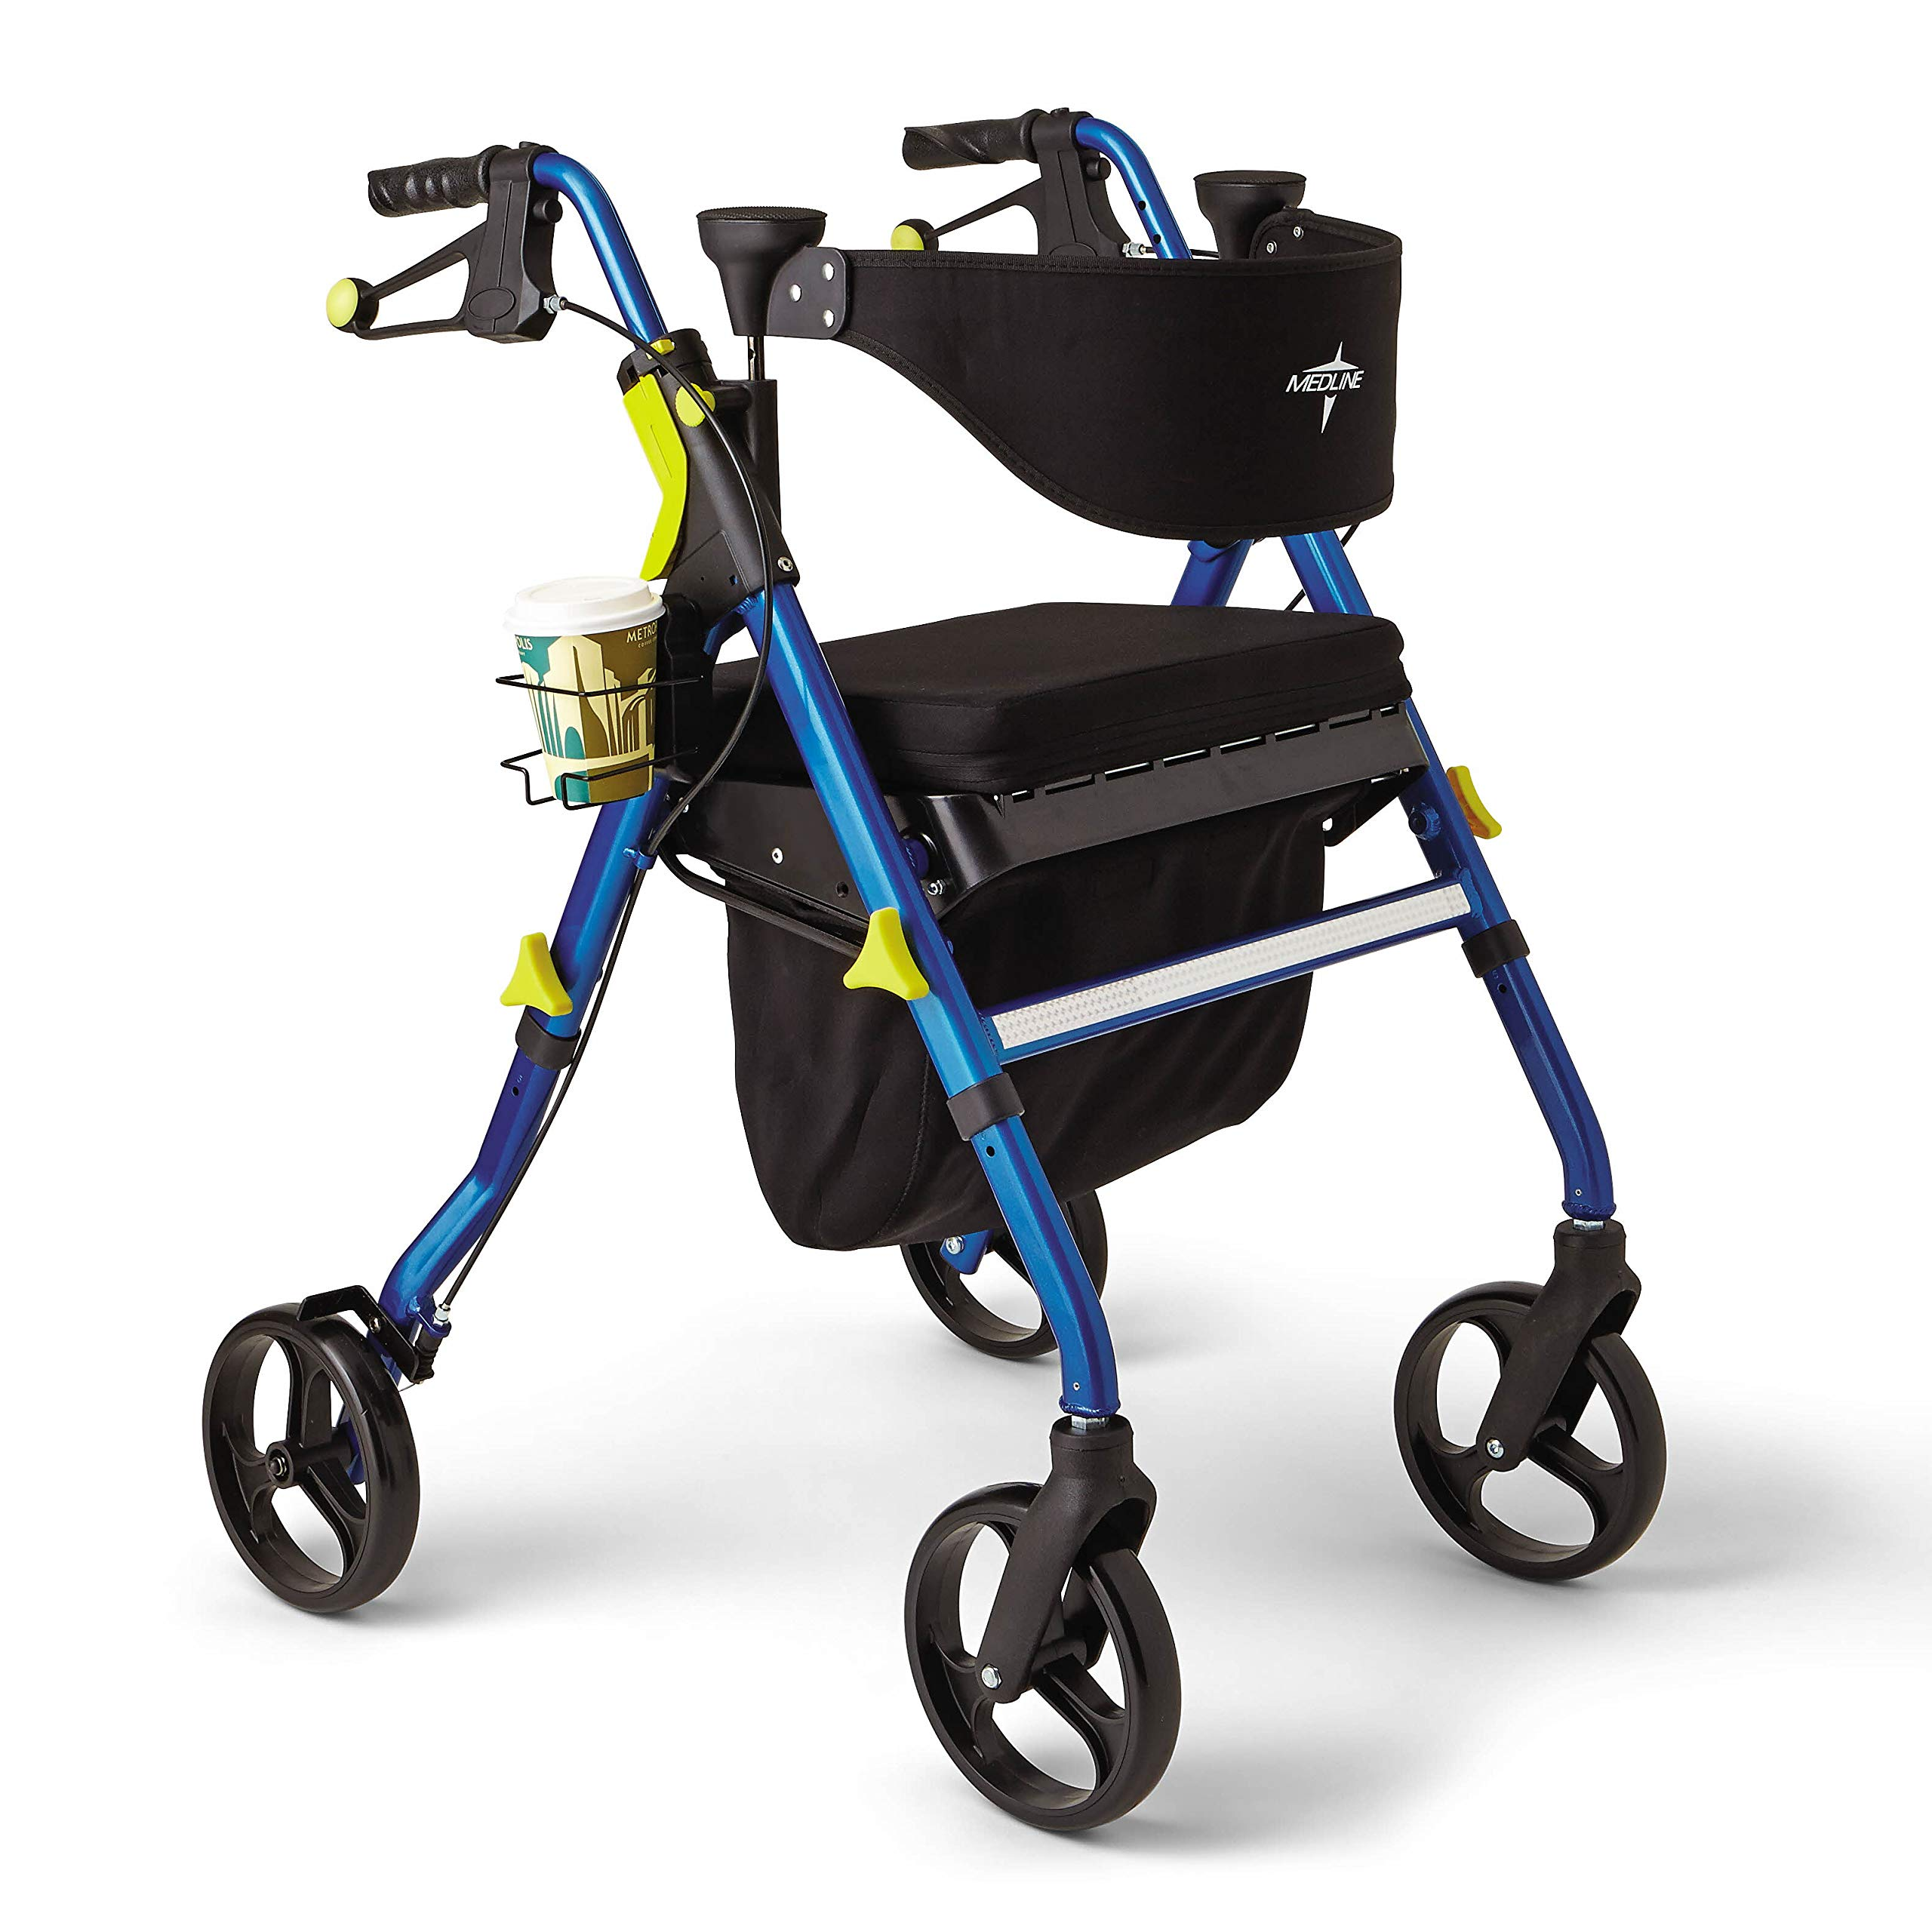 Medline Premium Empower Rollator Walker with Seat, Folding Rolling Walker with 8-inch Wheels, Blue by Medline